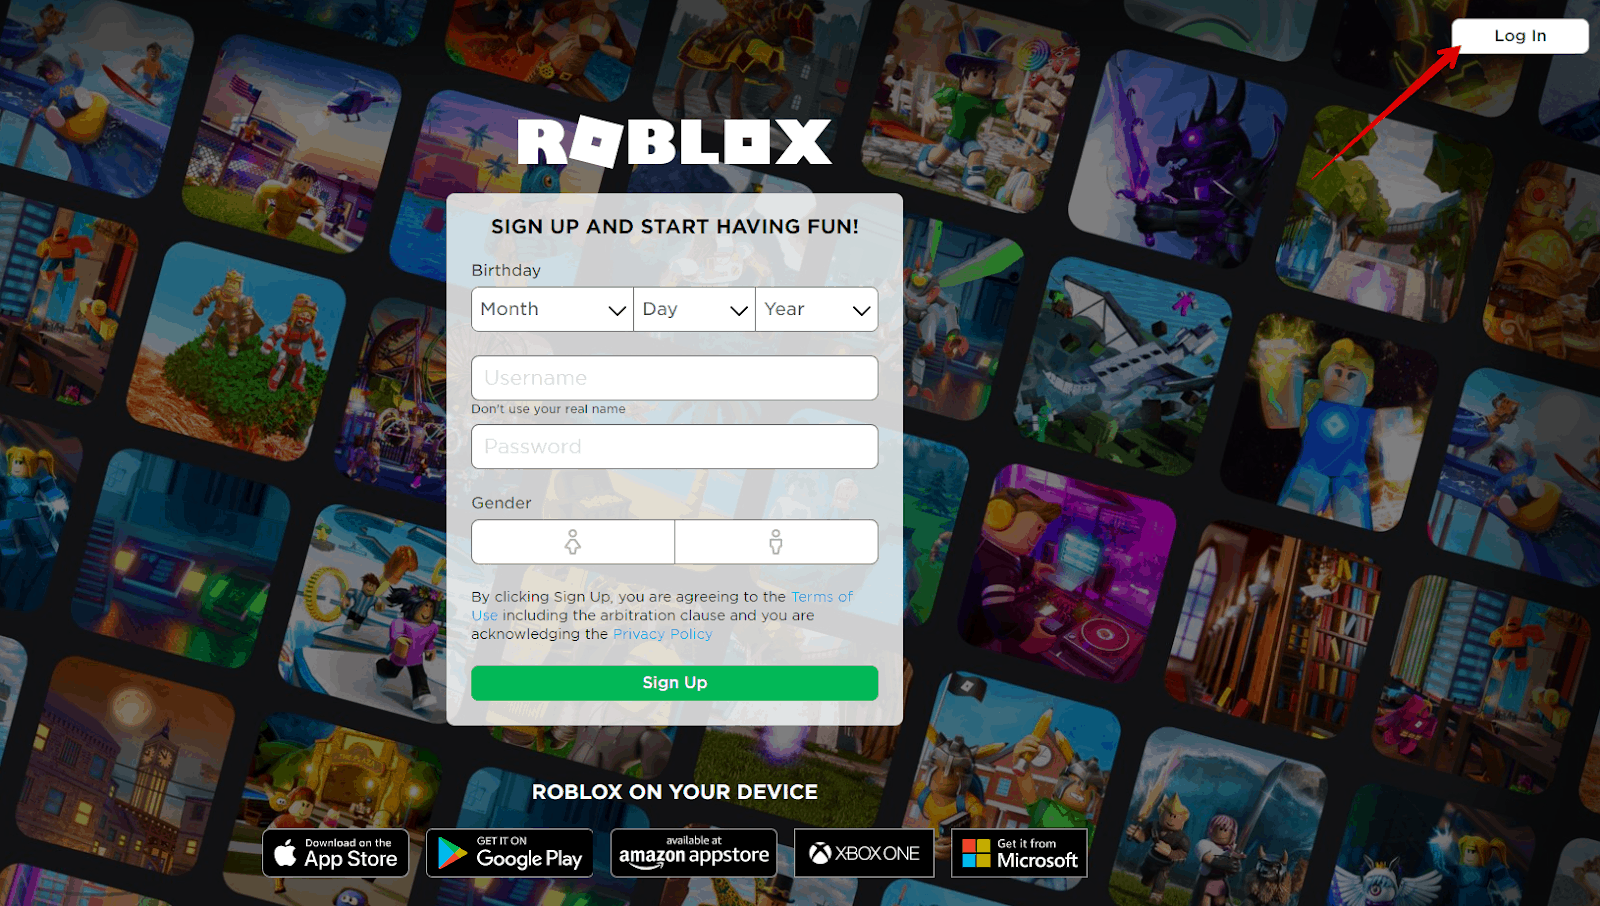 Contact Roblox support